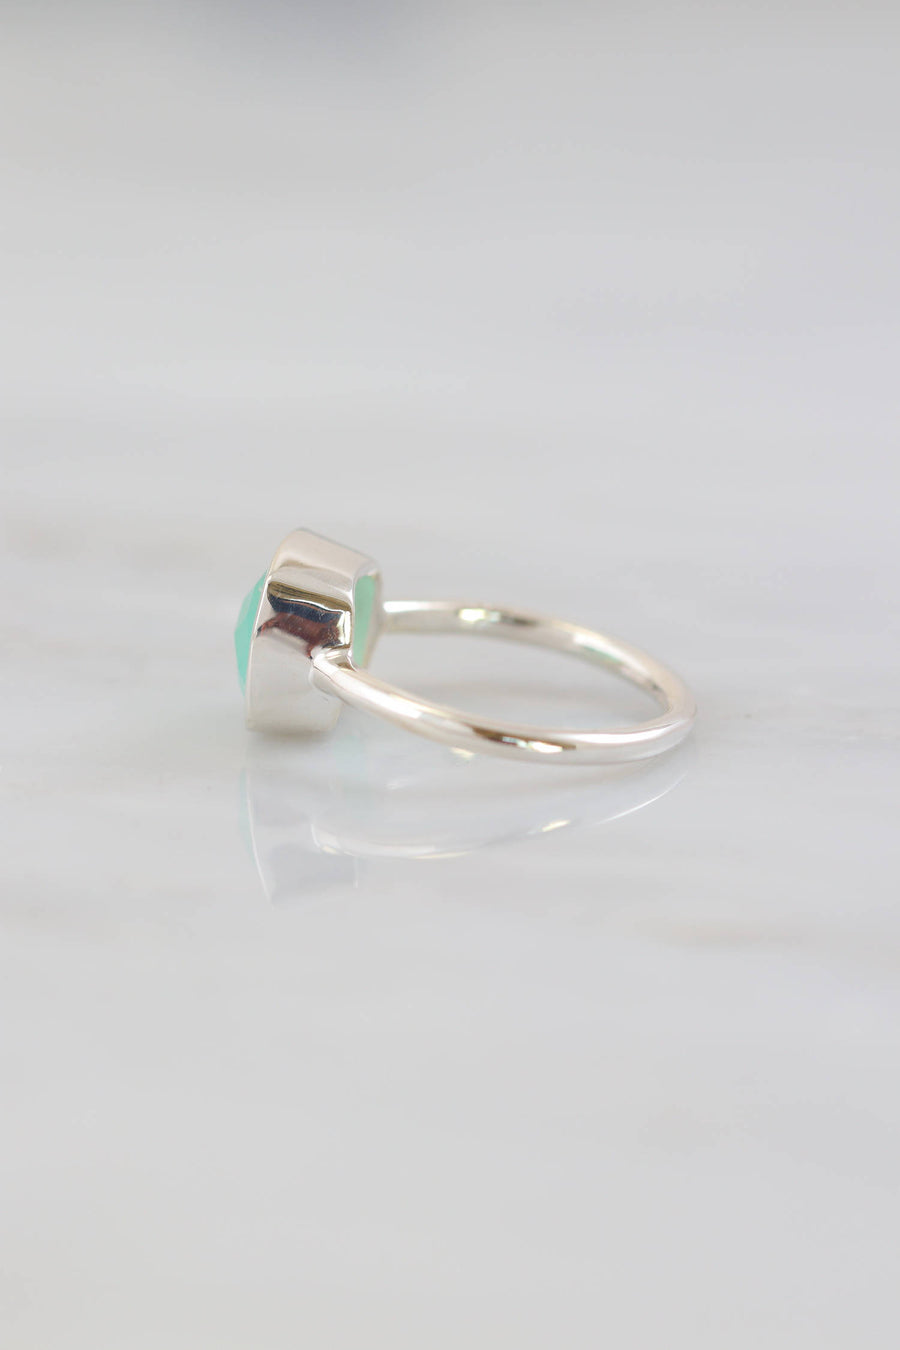 Aqua Chalcedony Ring, Cushion stackable rings, Chalcedony Ring, Everyday Ring, Gemstone Rings, 925 Silver Rings, Brides Gift, Elegant rings